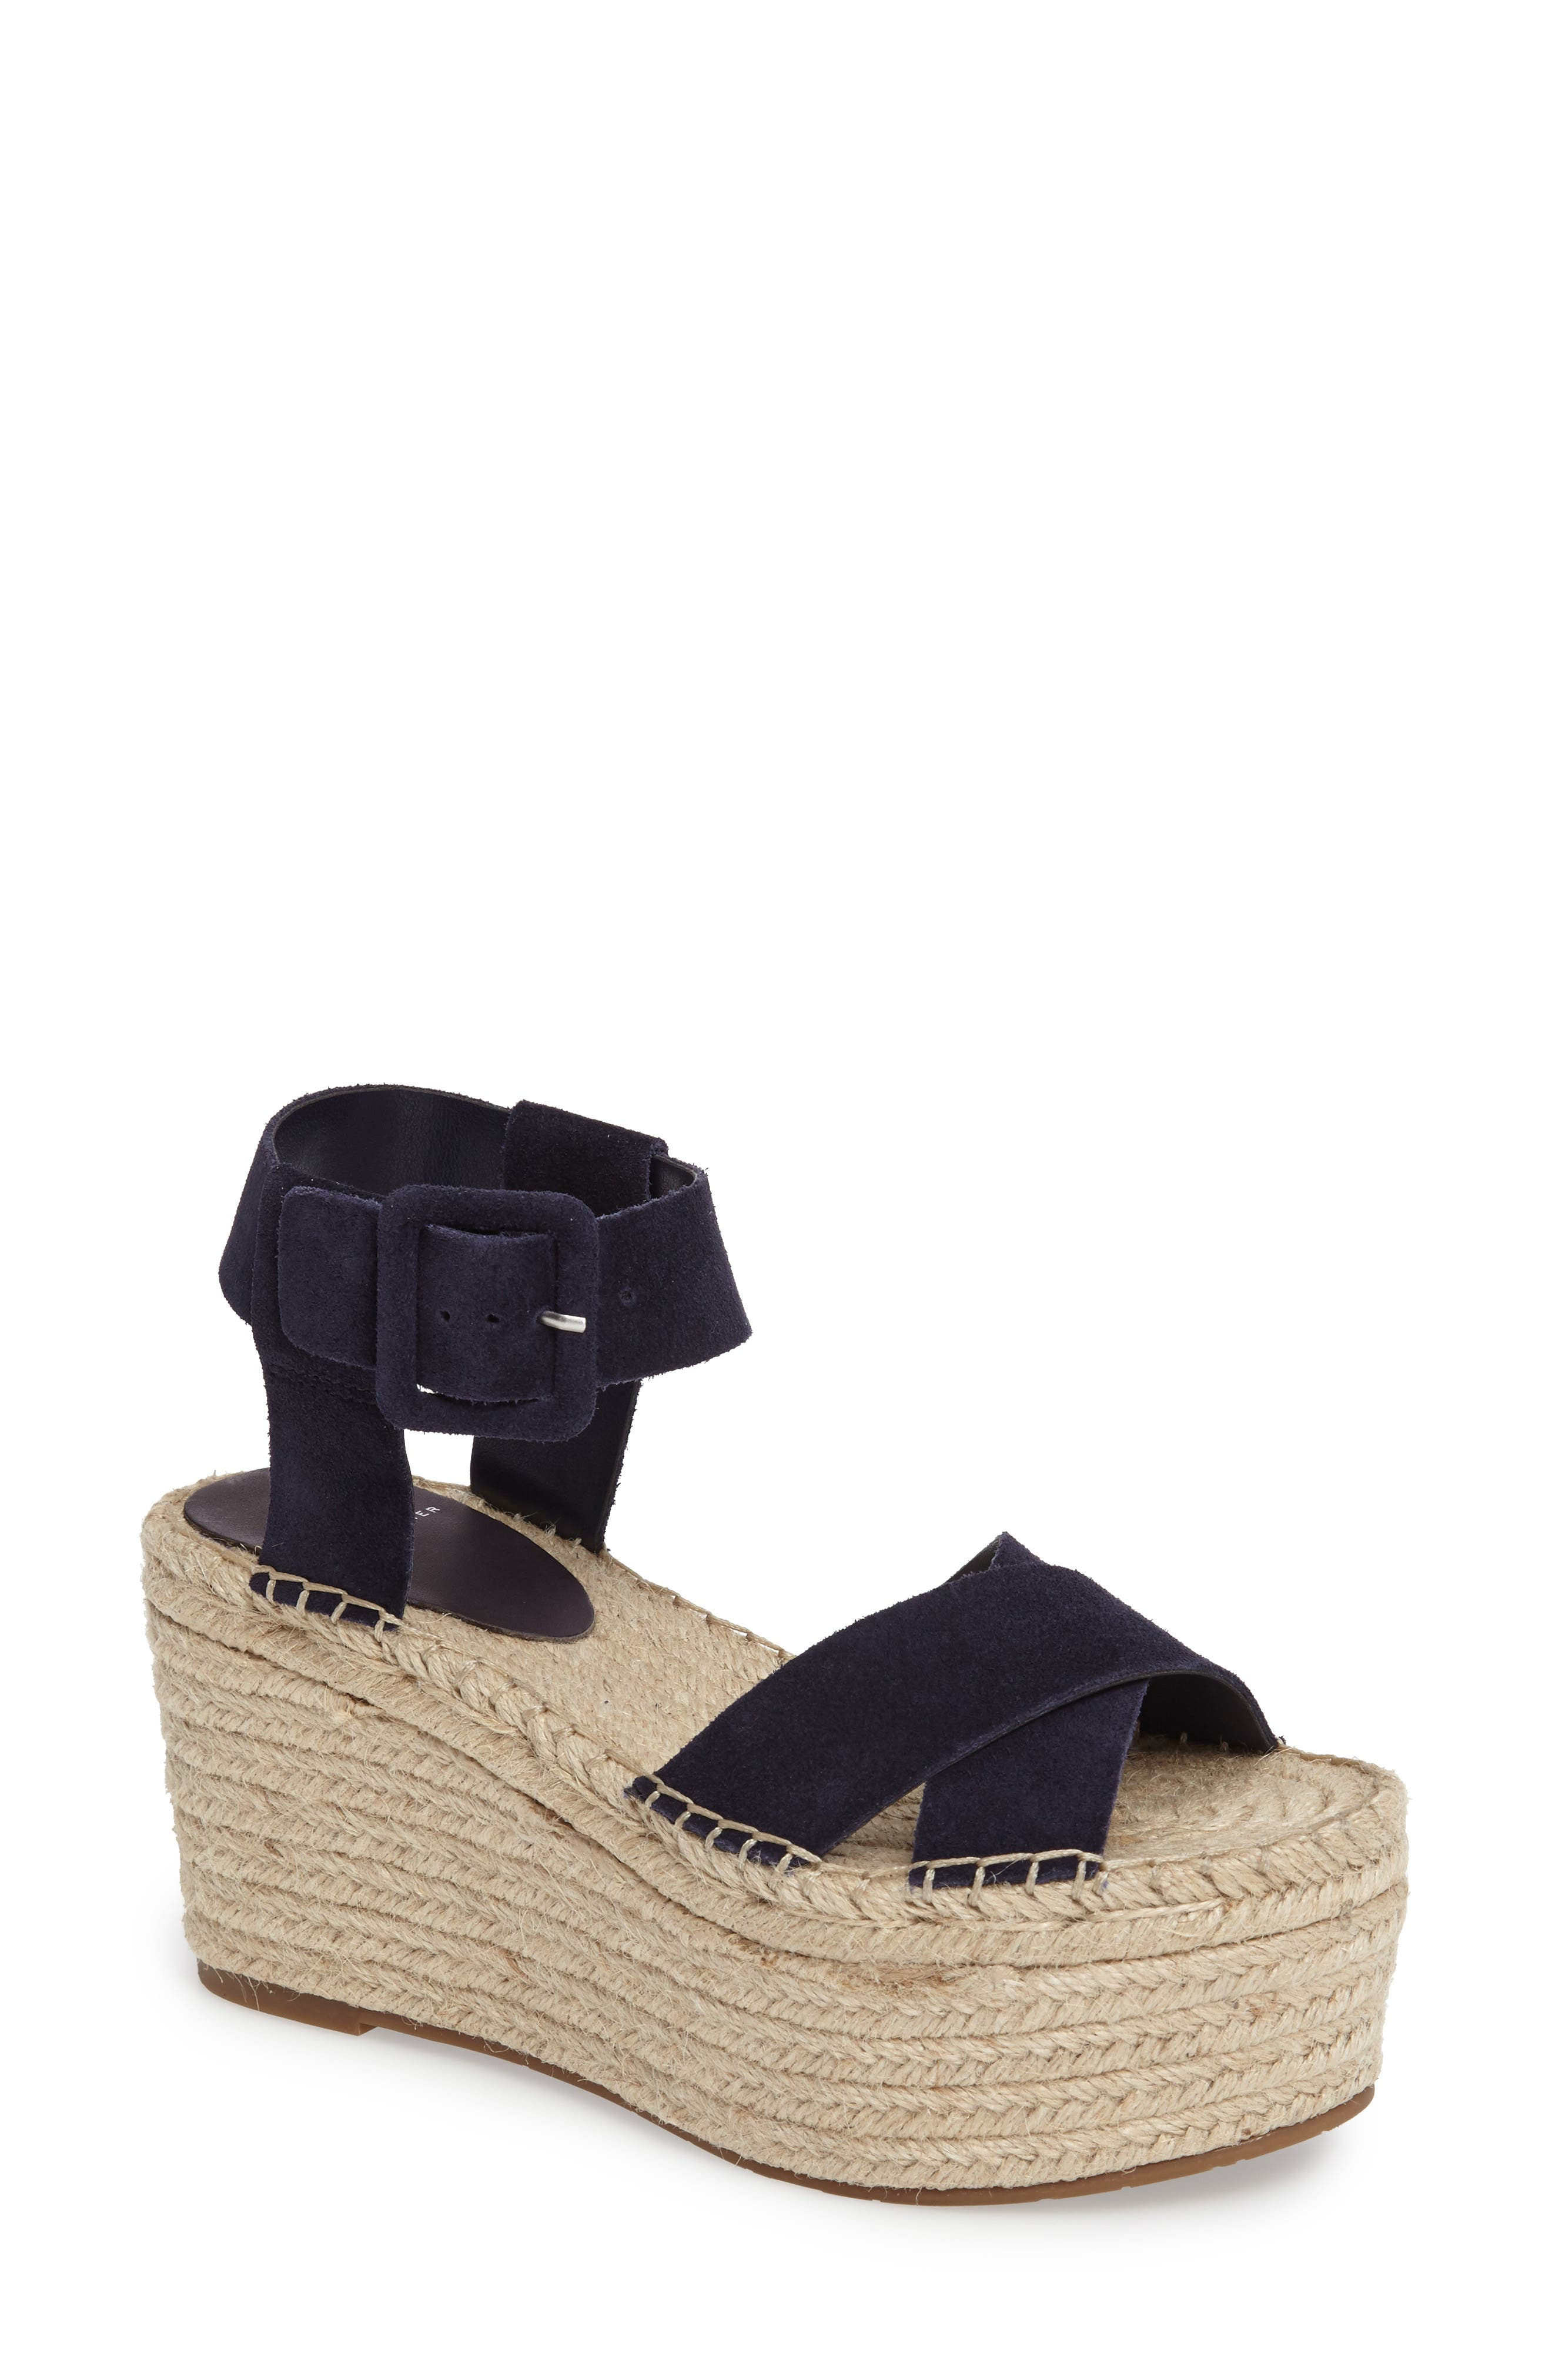 'Randall' Platform Wedge,                         Main,                         color, NAVY SUEDE